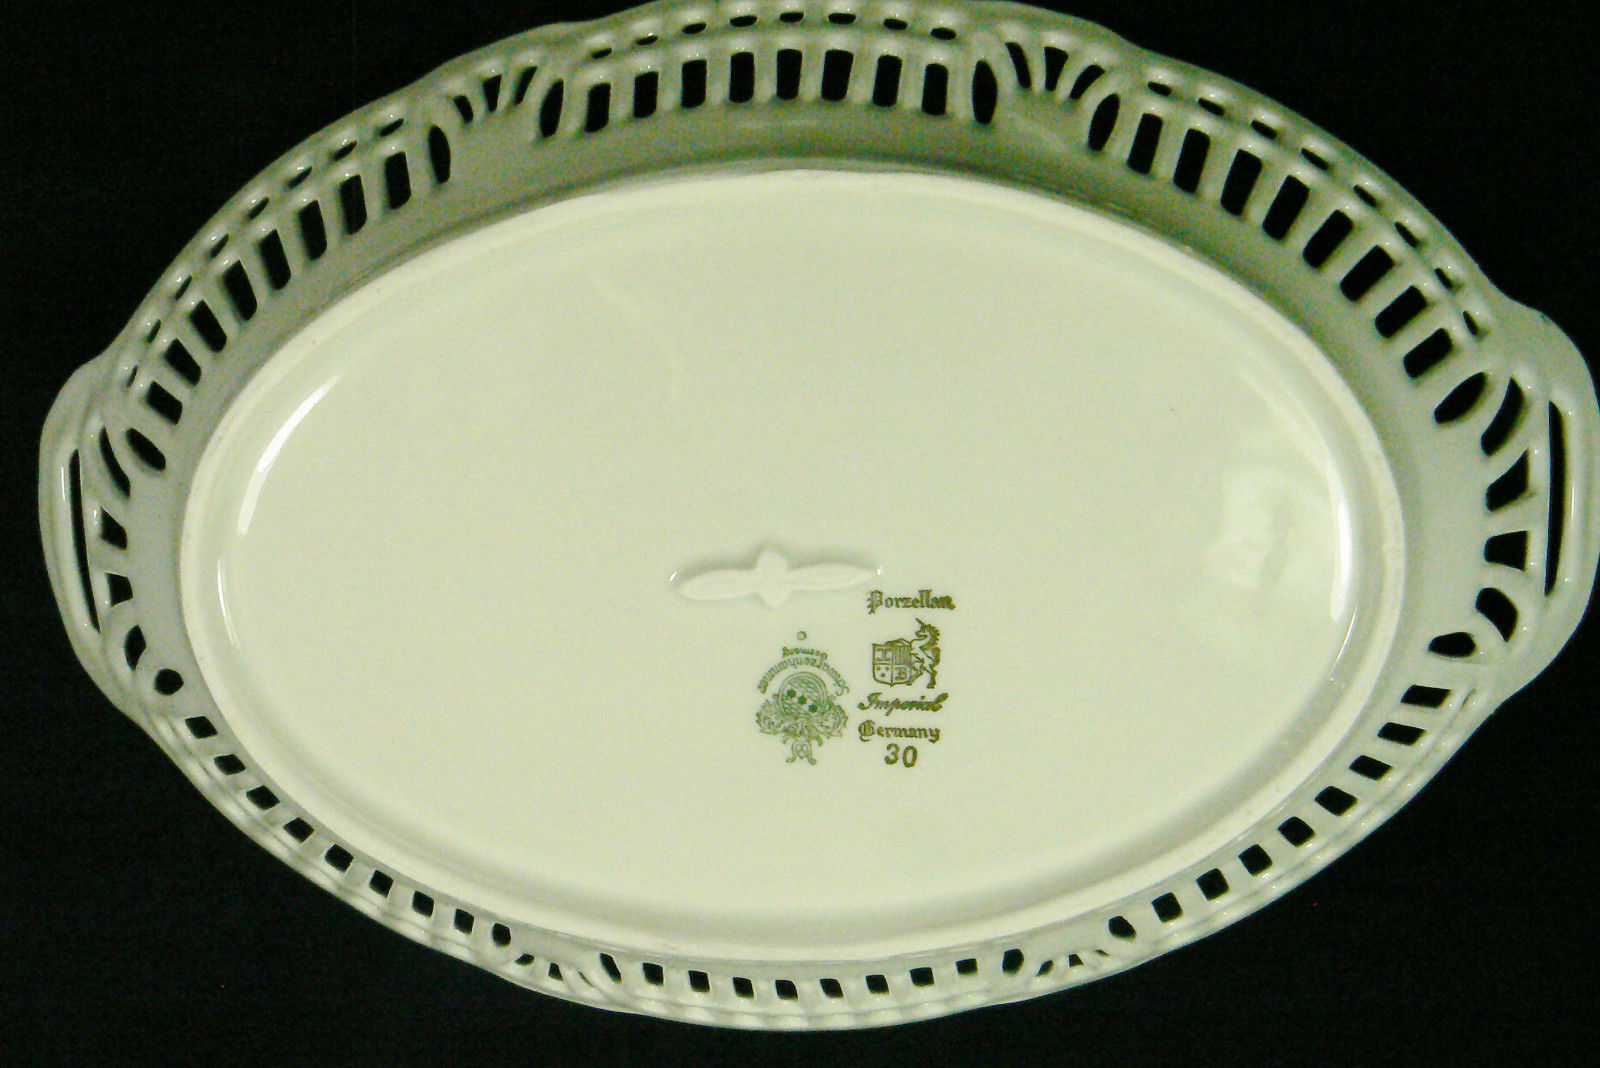 how to cut a slot in a porcelain bowl